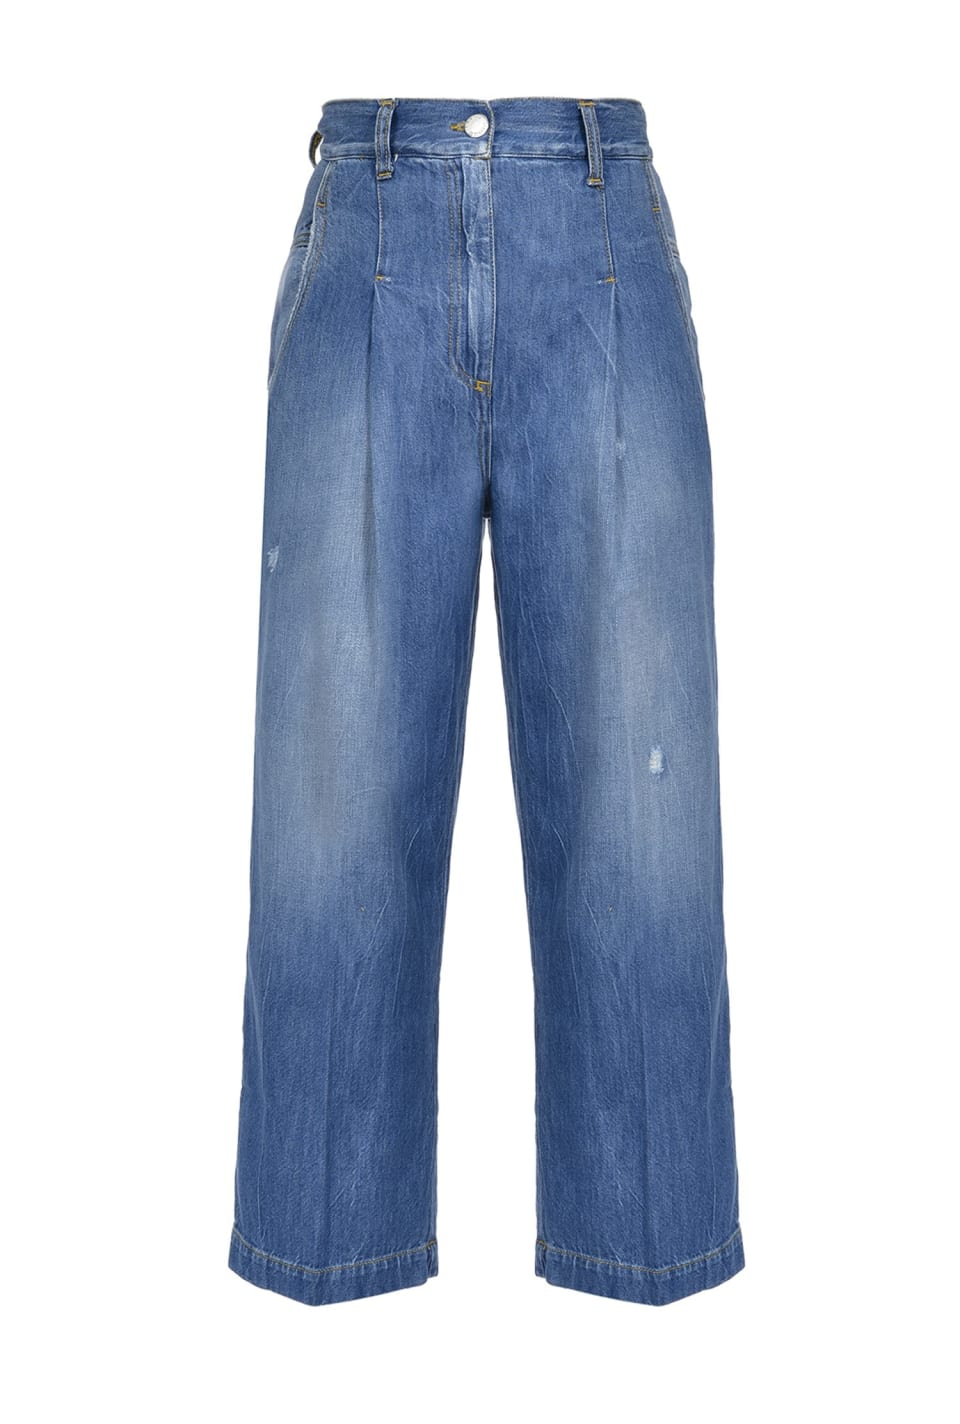 Culotte-style jeans in loosely woven twill